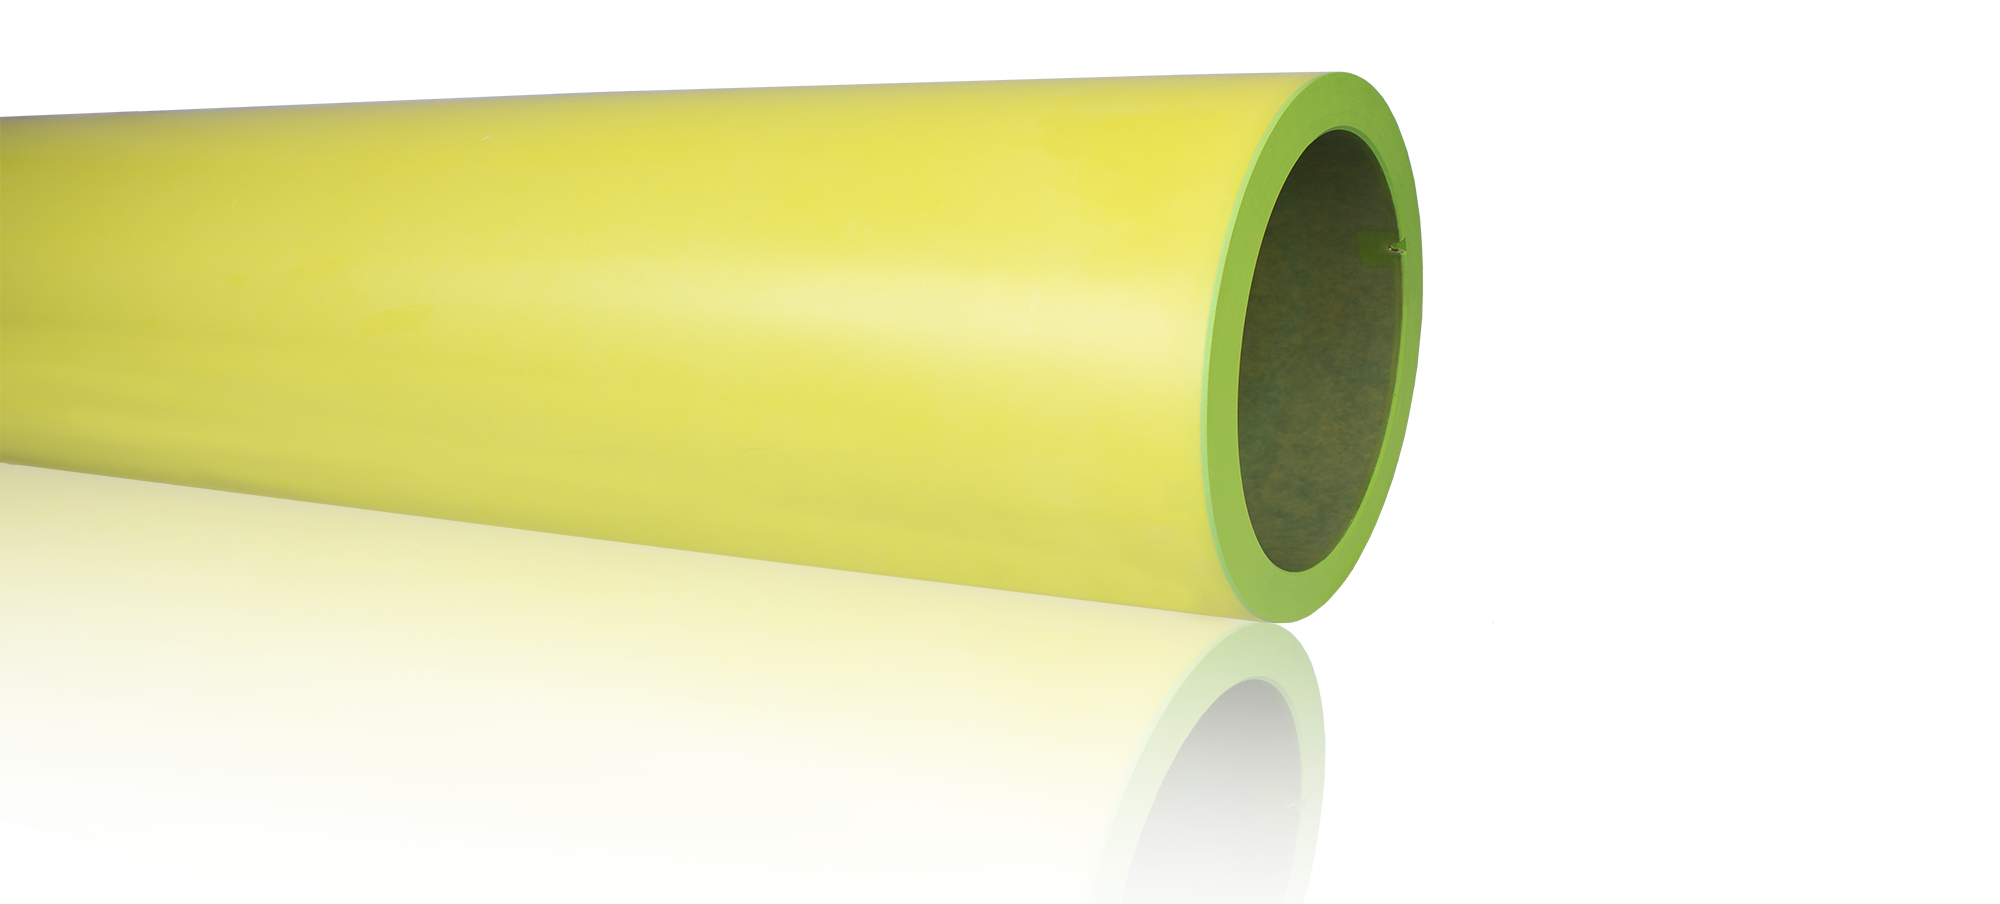 flexo printing sleeves picture